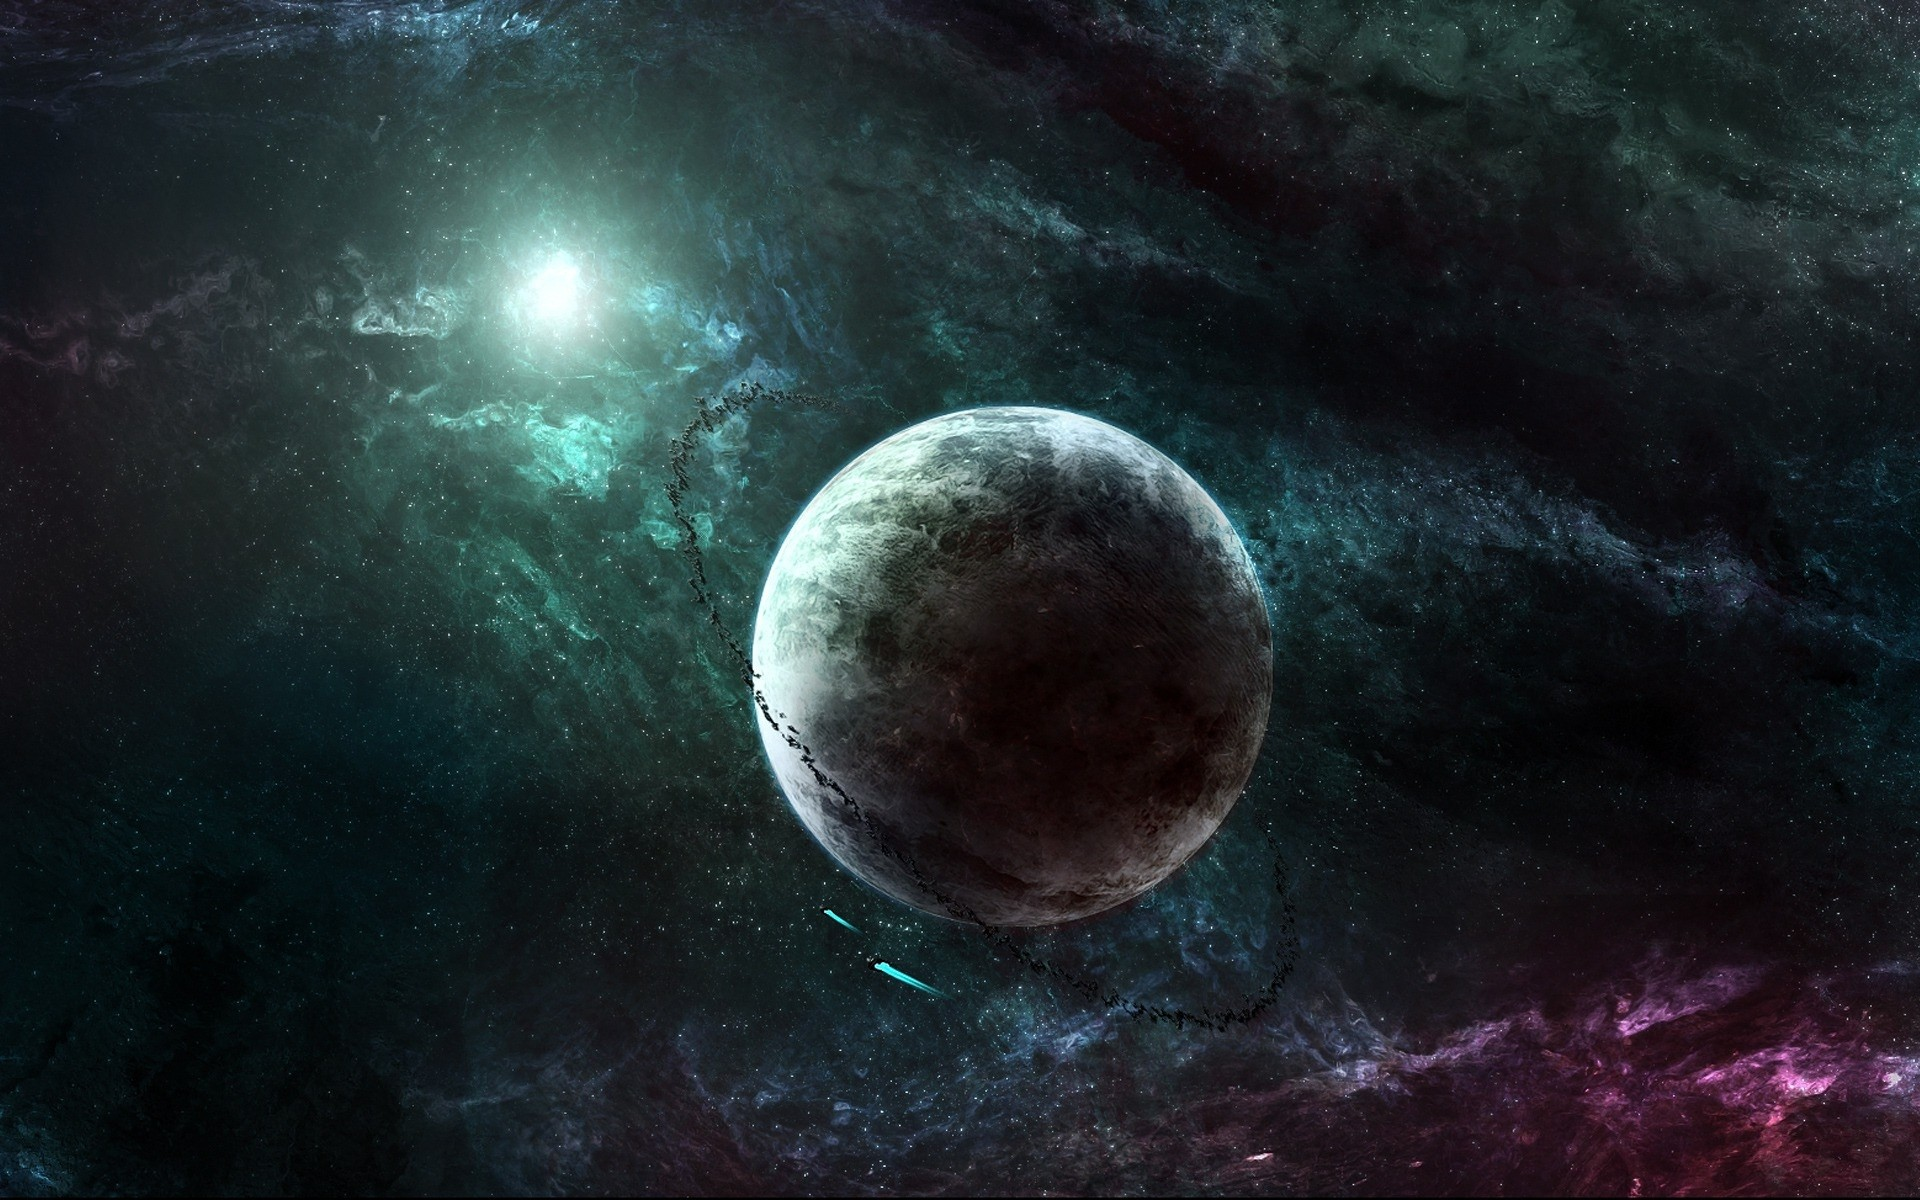 Beauty of space wallpapers beauty of space stock photos - Space wallpaper net ...